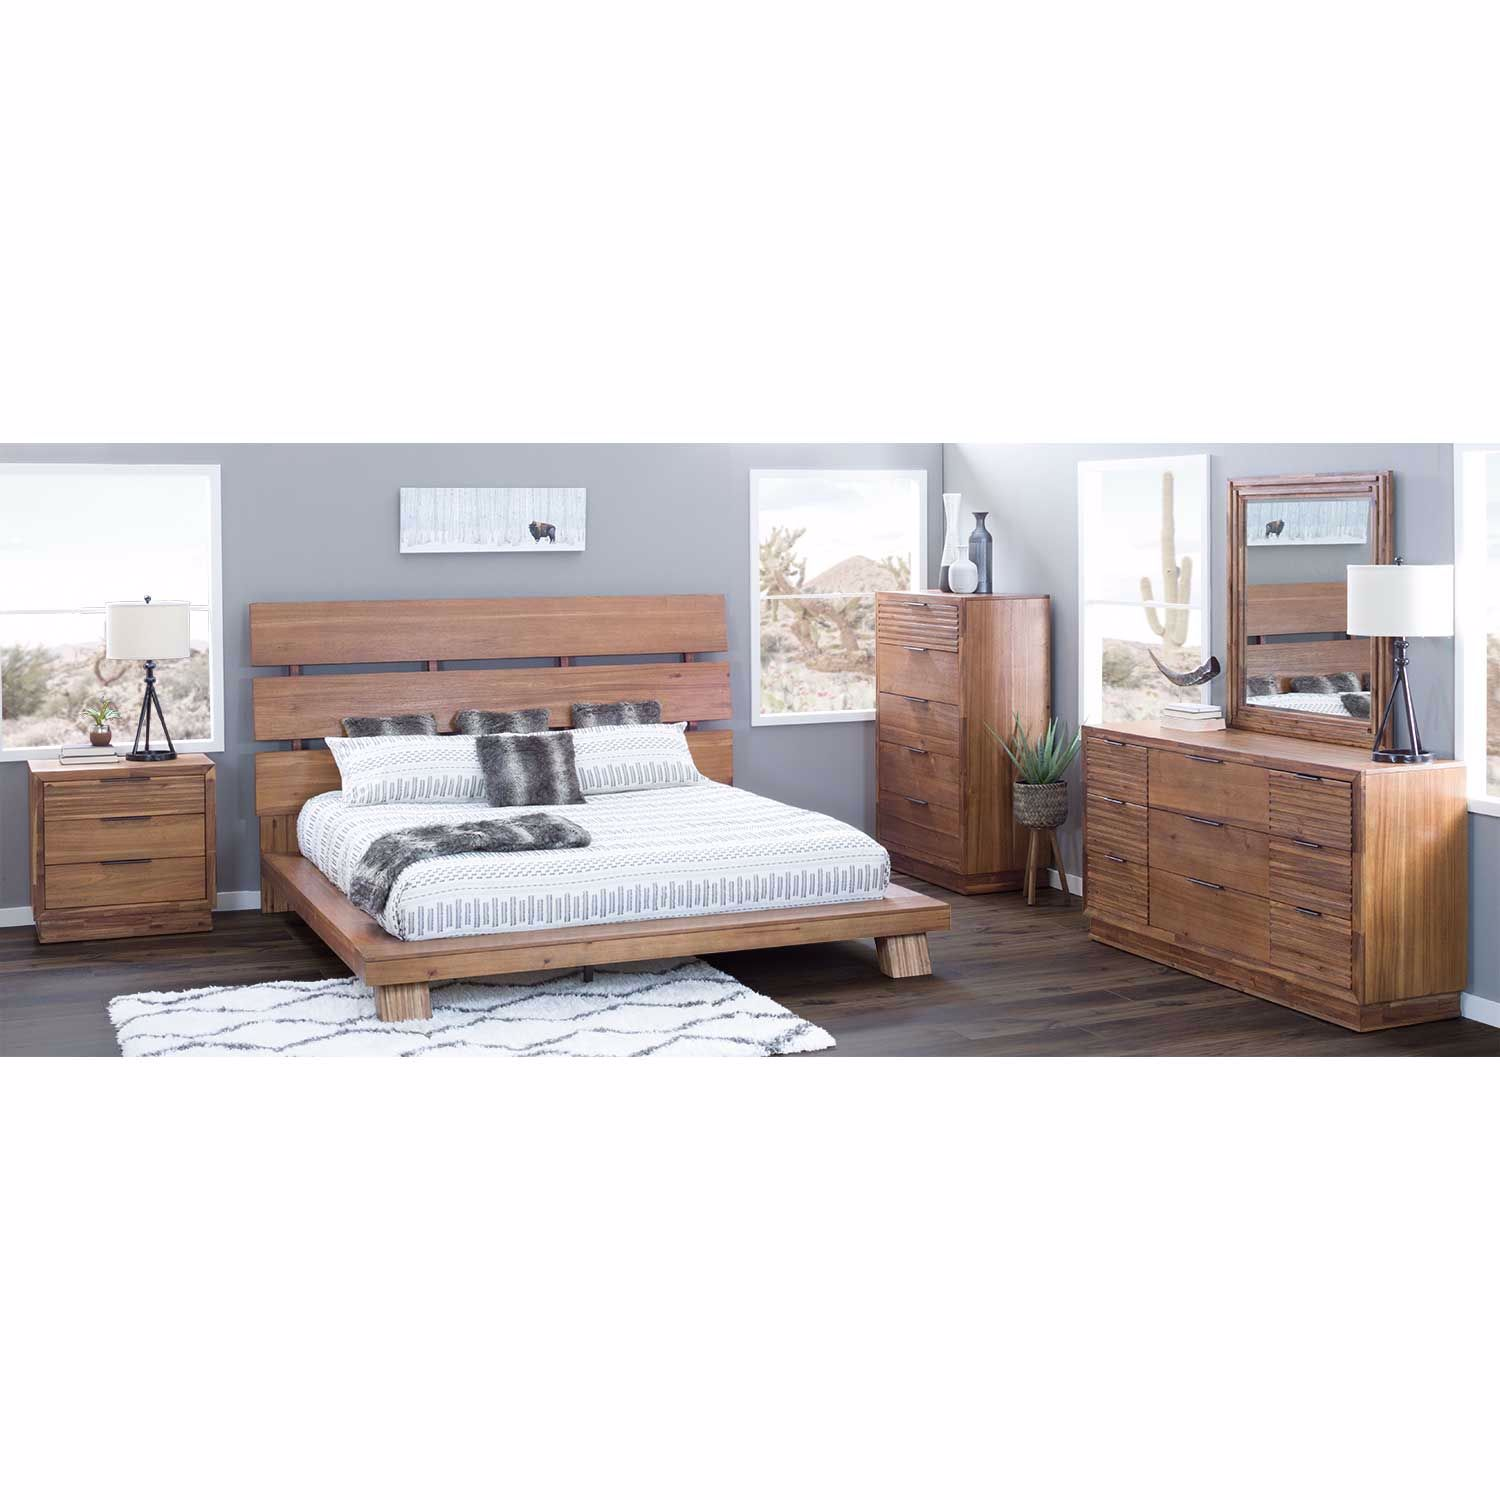 Melbourne 5 Piece Bedroom Set